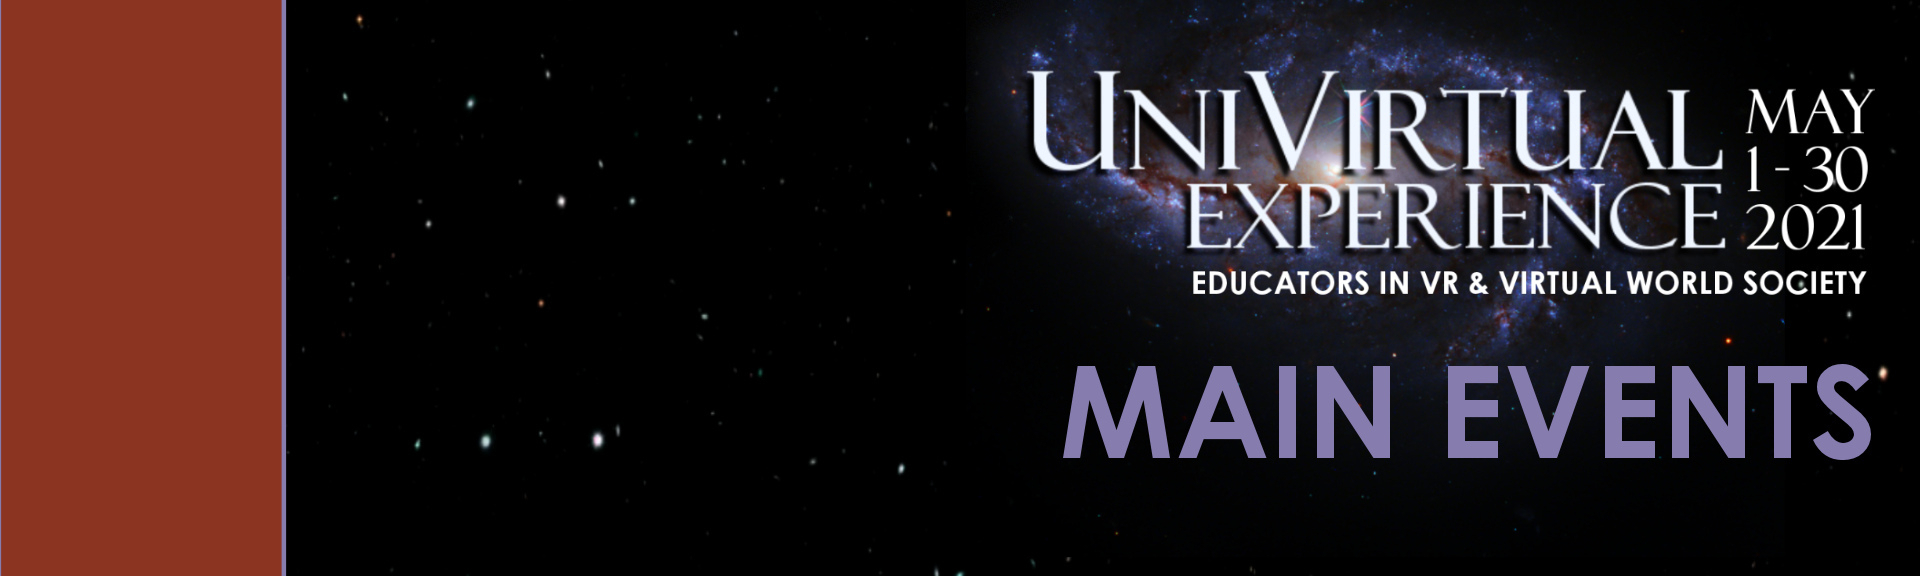 Univirtual experience asvr event banner main events